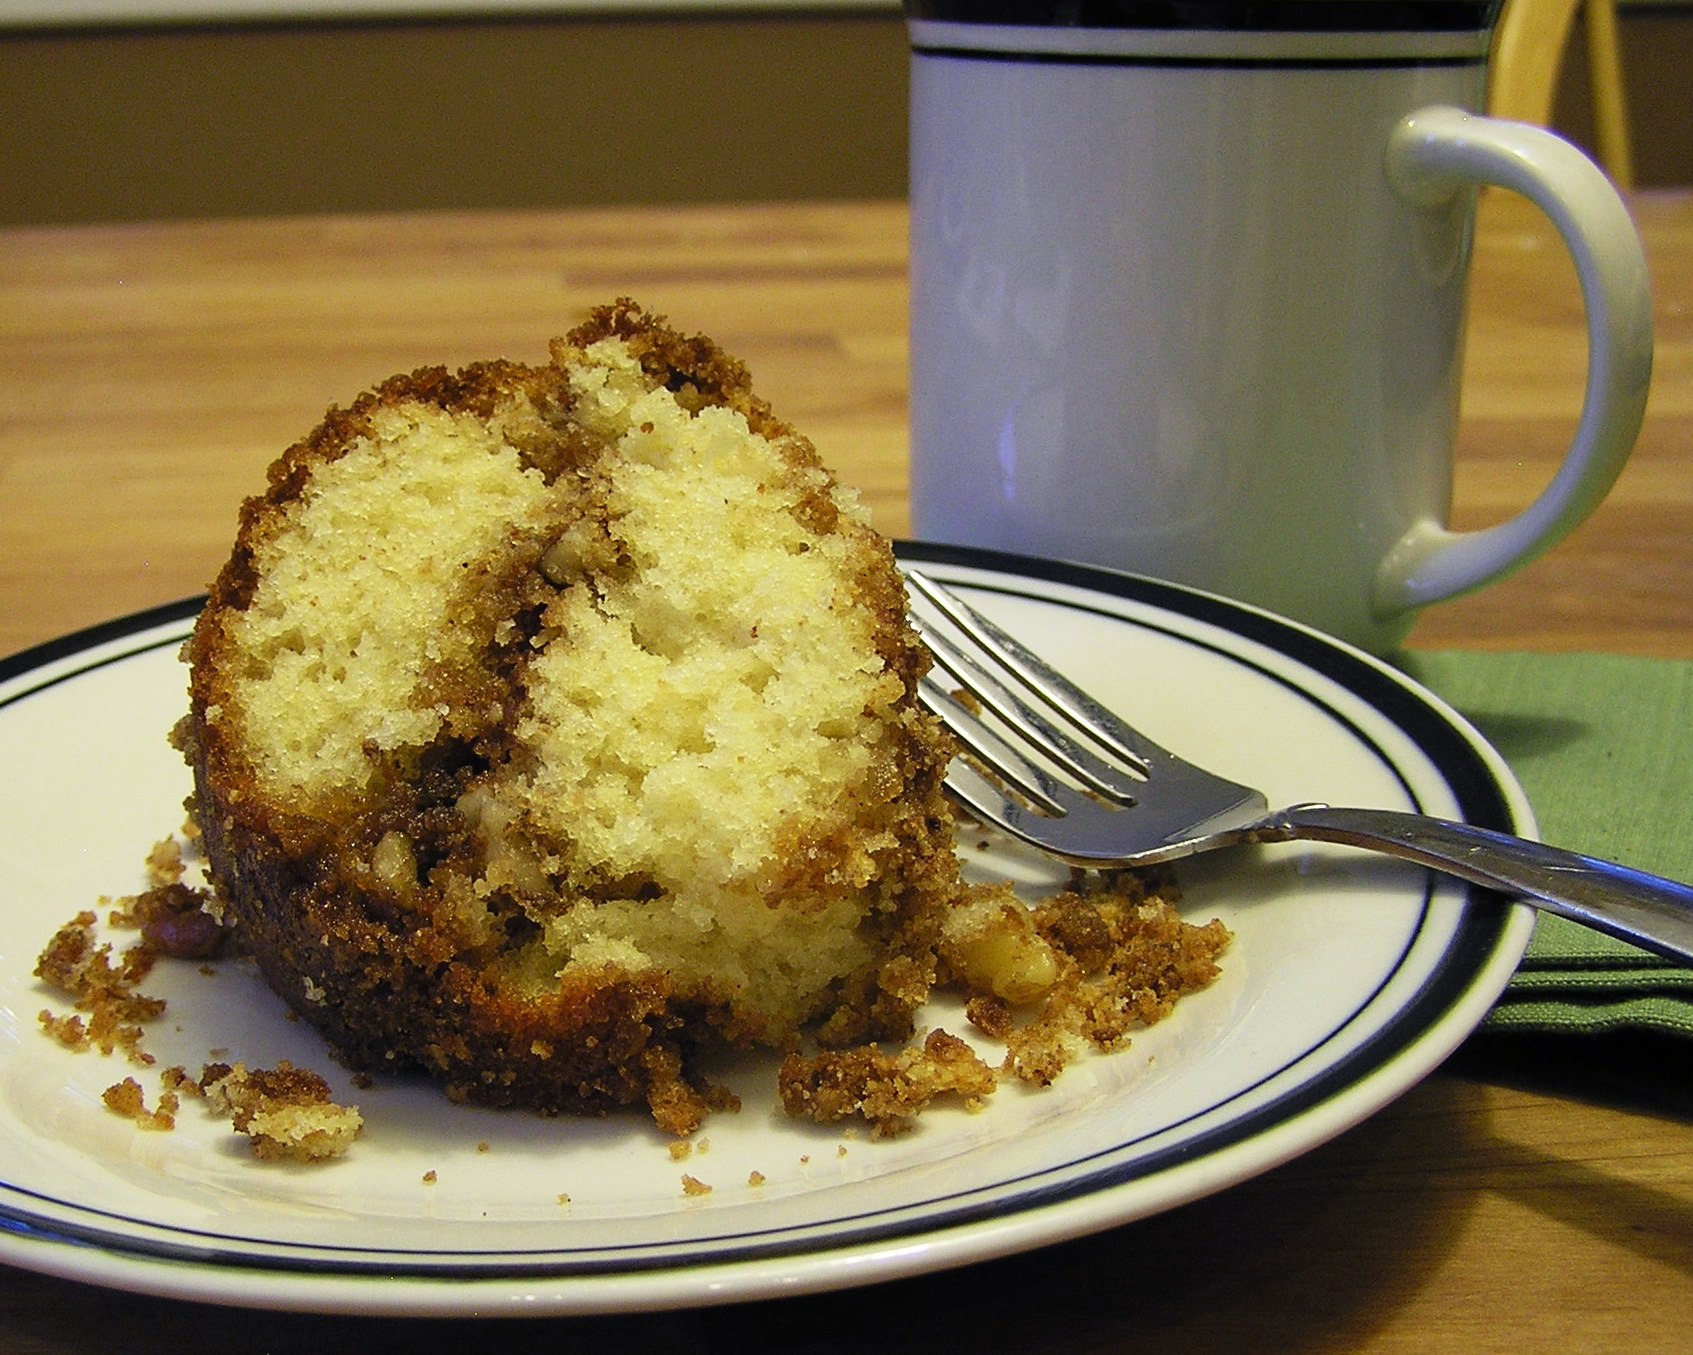 Starbucks Banana Chocolate Chip Coffee Cake